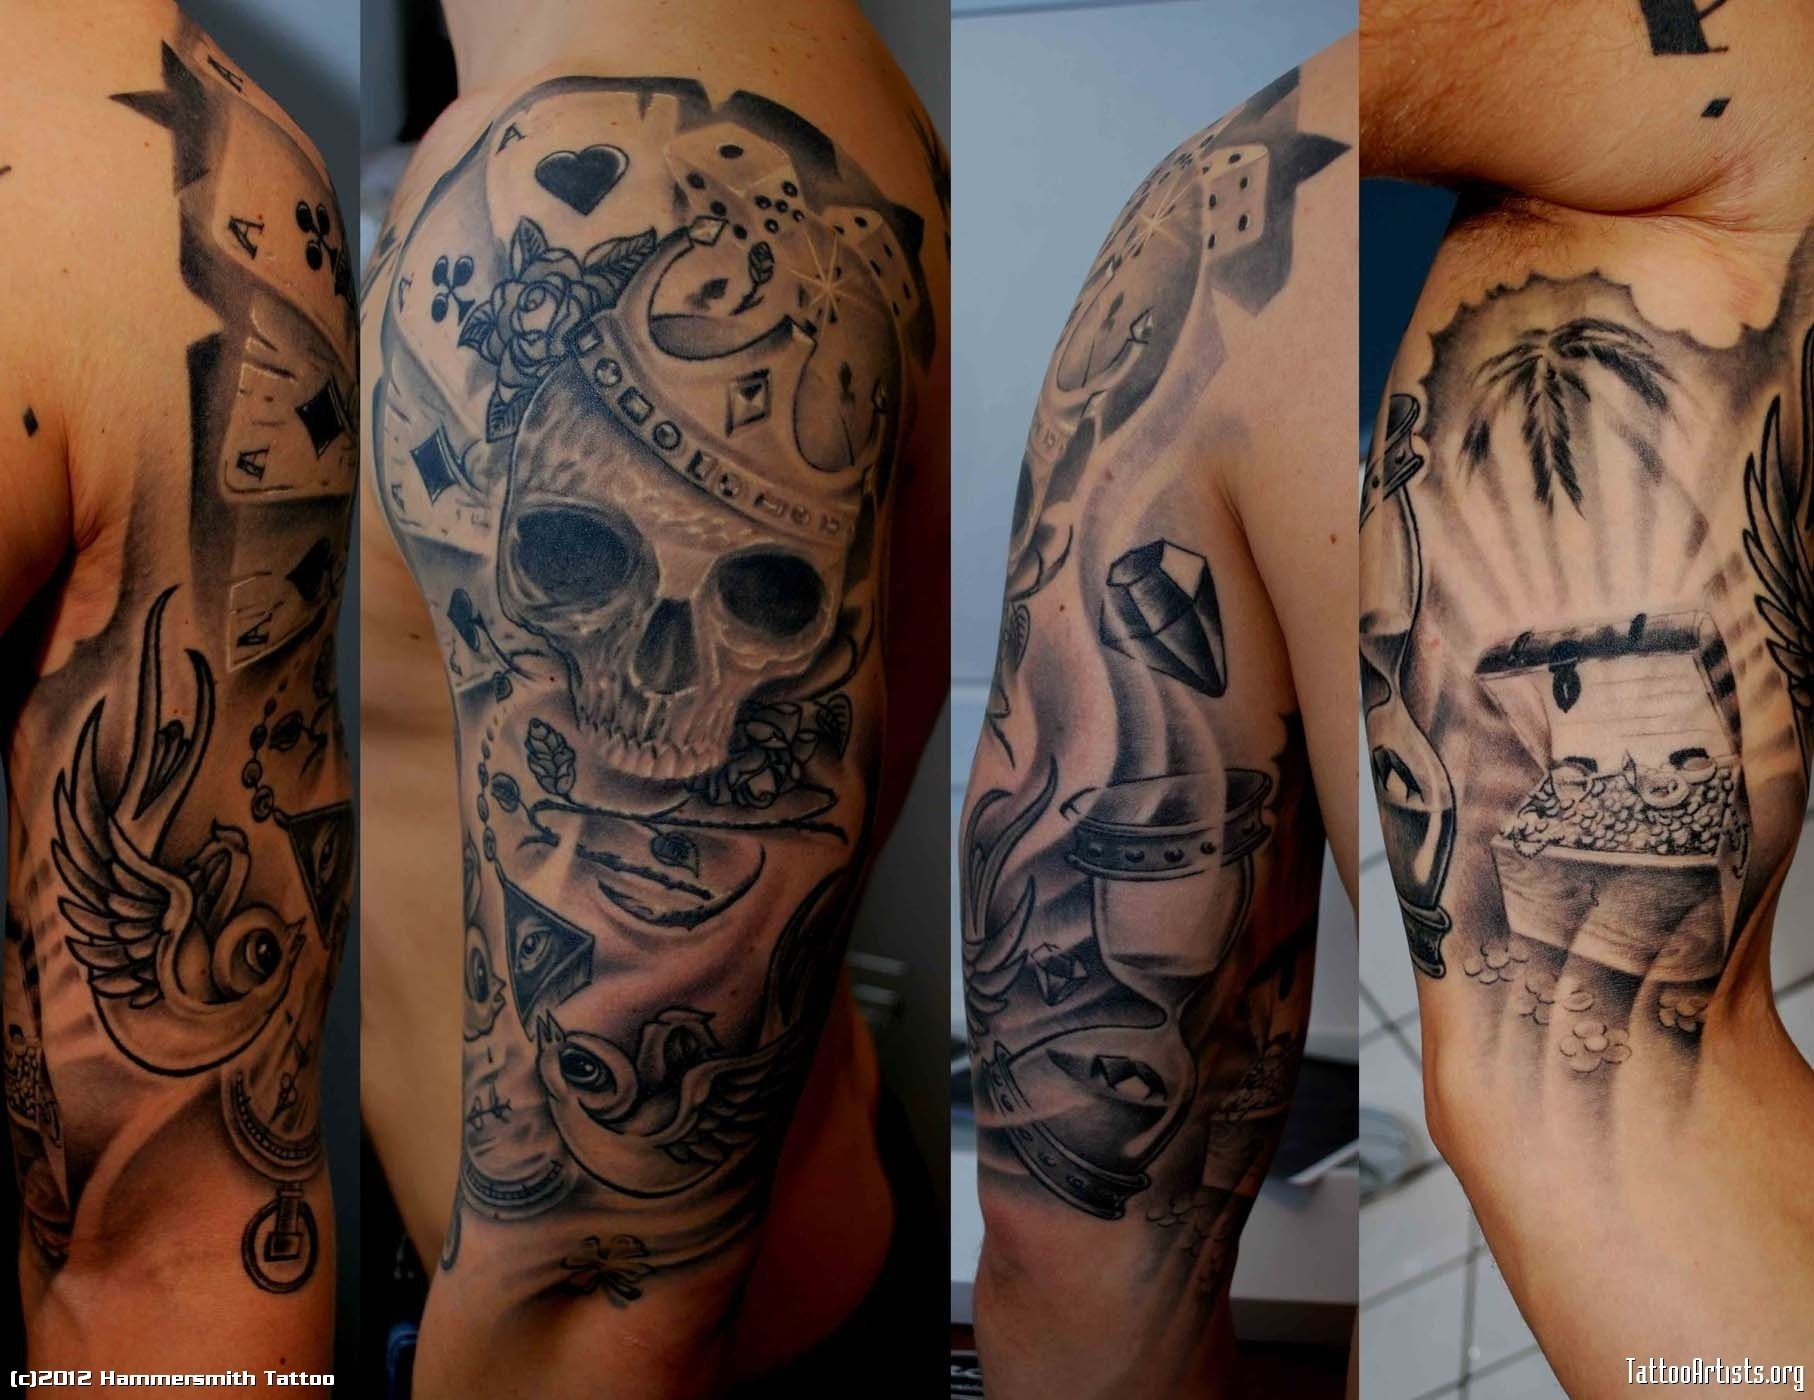 10 Most Recommended Black And Grey Tattoo Ideas black and grey koi fish sleevefull tattoo sleeves google search 1 2020